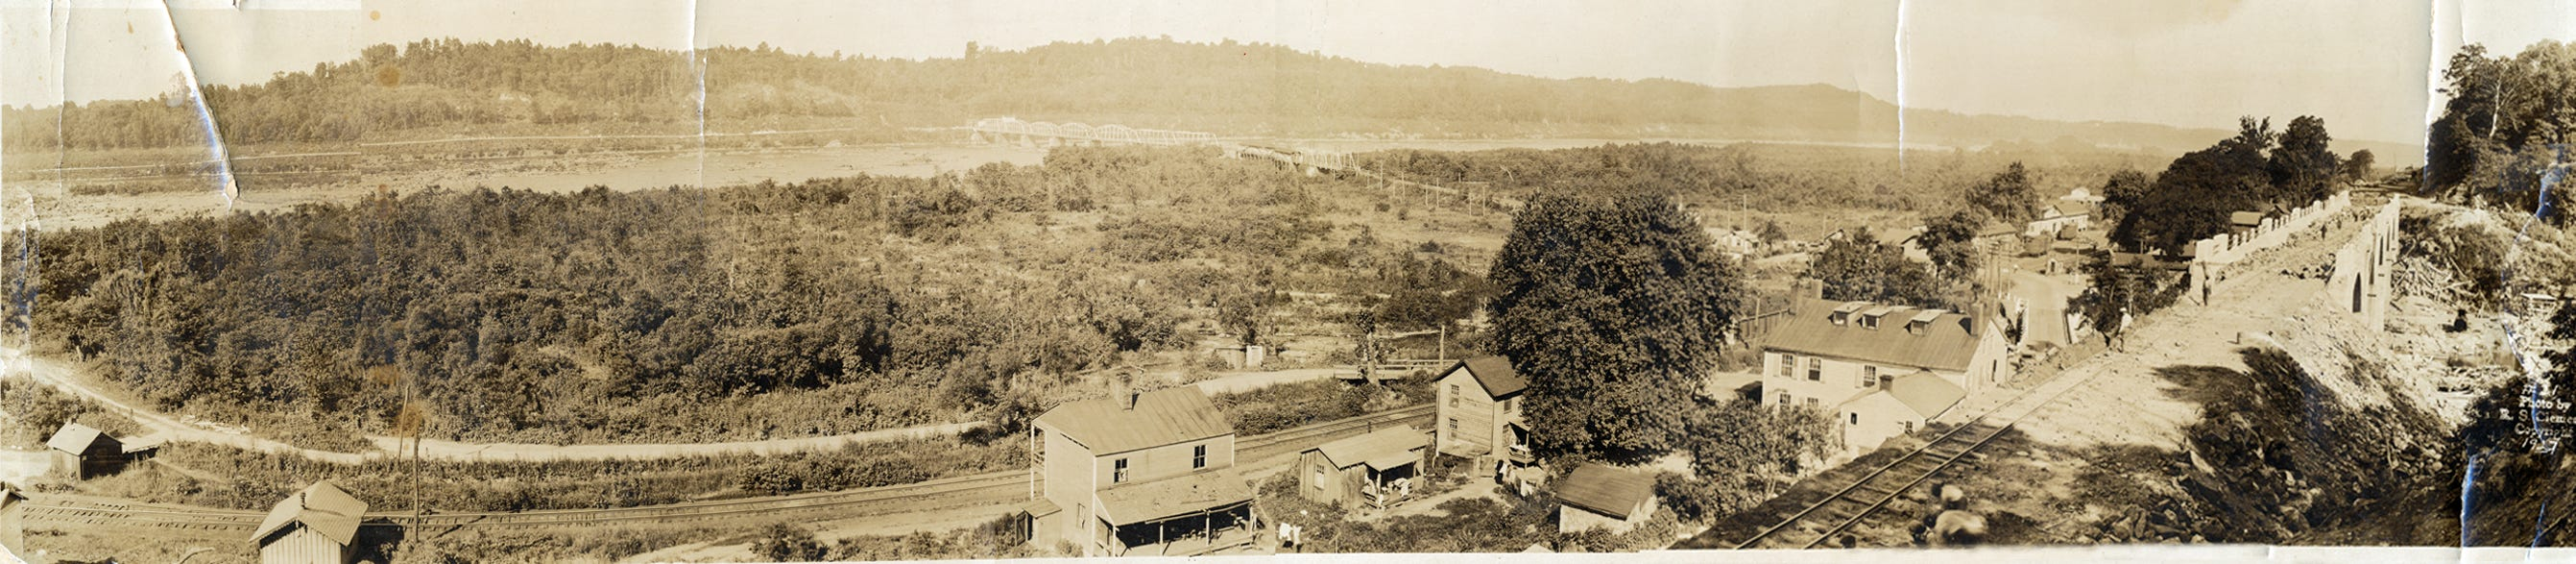 This image shows the town of Conowingo, in western Cecil County, Md., before the Conowingo Dam was built on the Susquehanna River. The town was flooded Jan. 18, 1928, as construction of the dam and reservoir was completed.